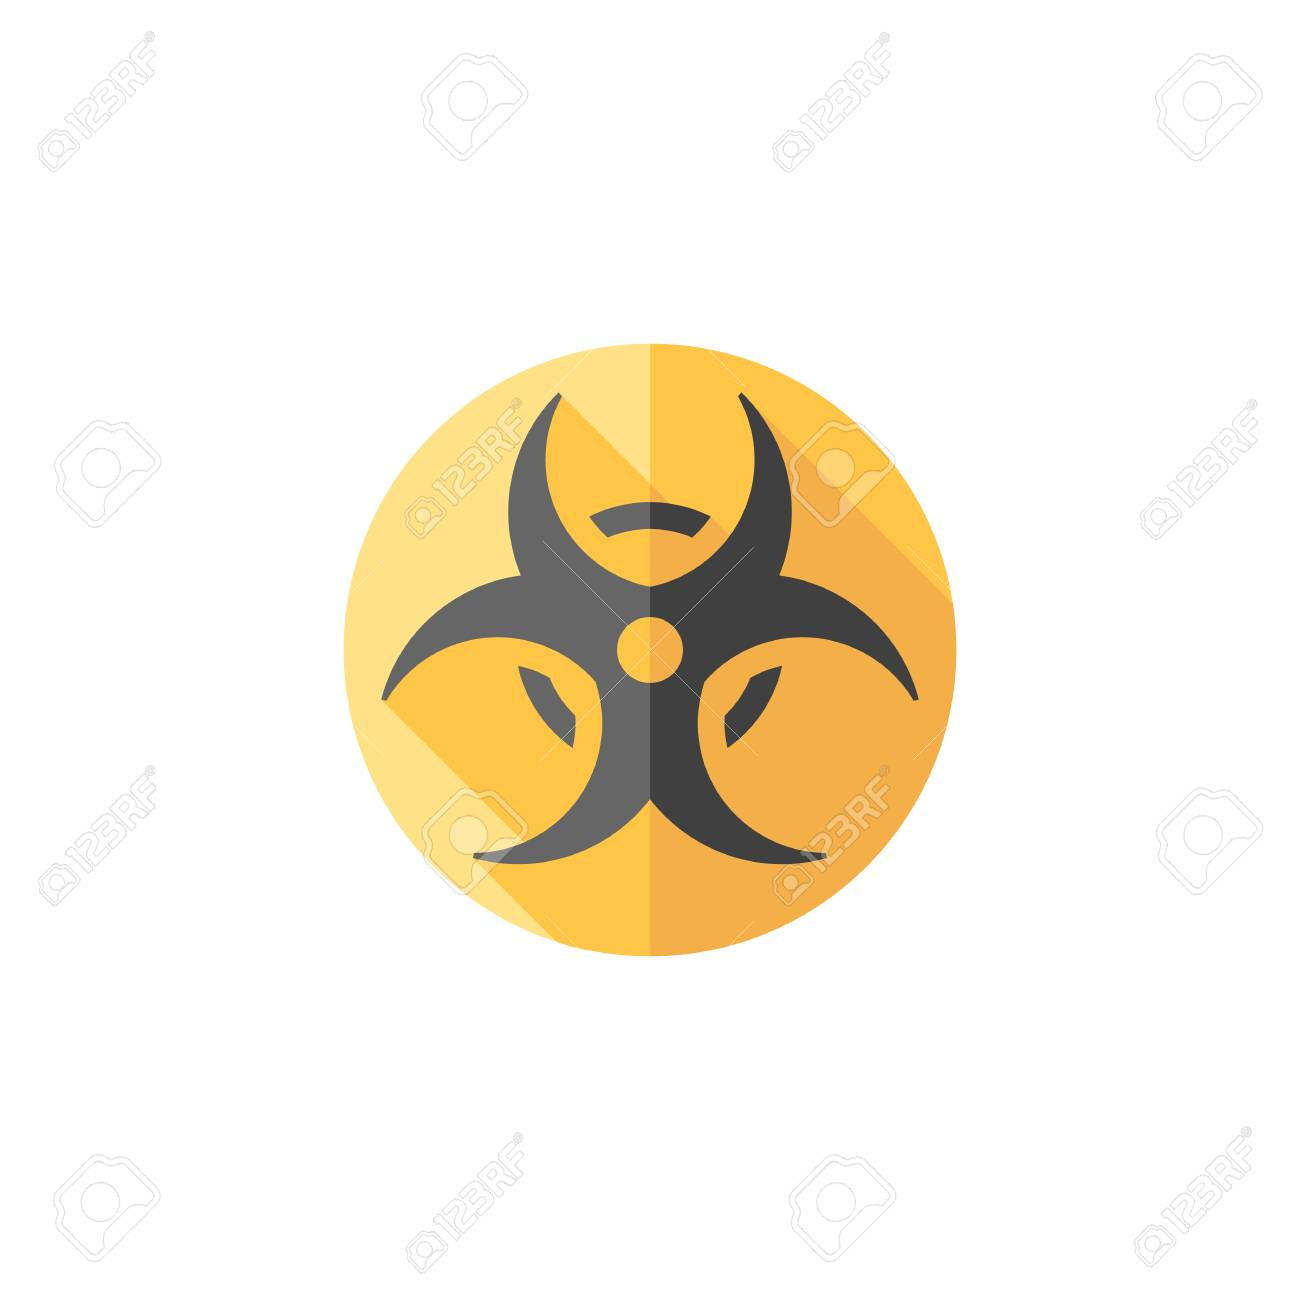 Biohazard symbol icon in flat color style science technology biohazard symbol icon in flat color style science technology biology environment hazard danger stock vector biocorpaavc Images